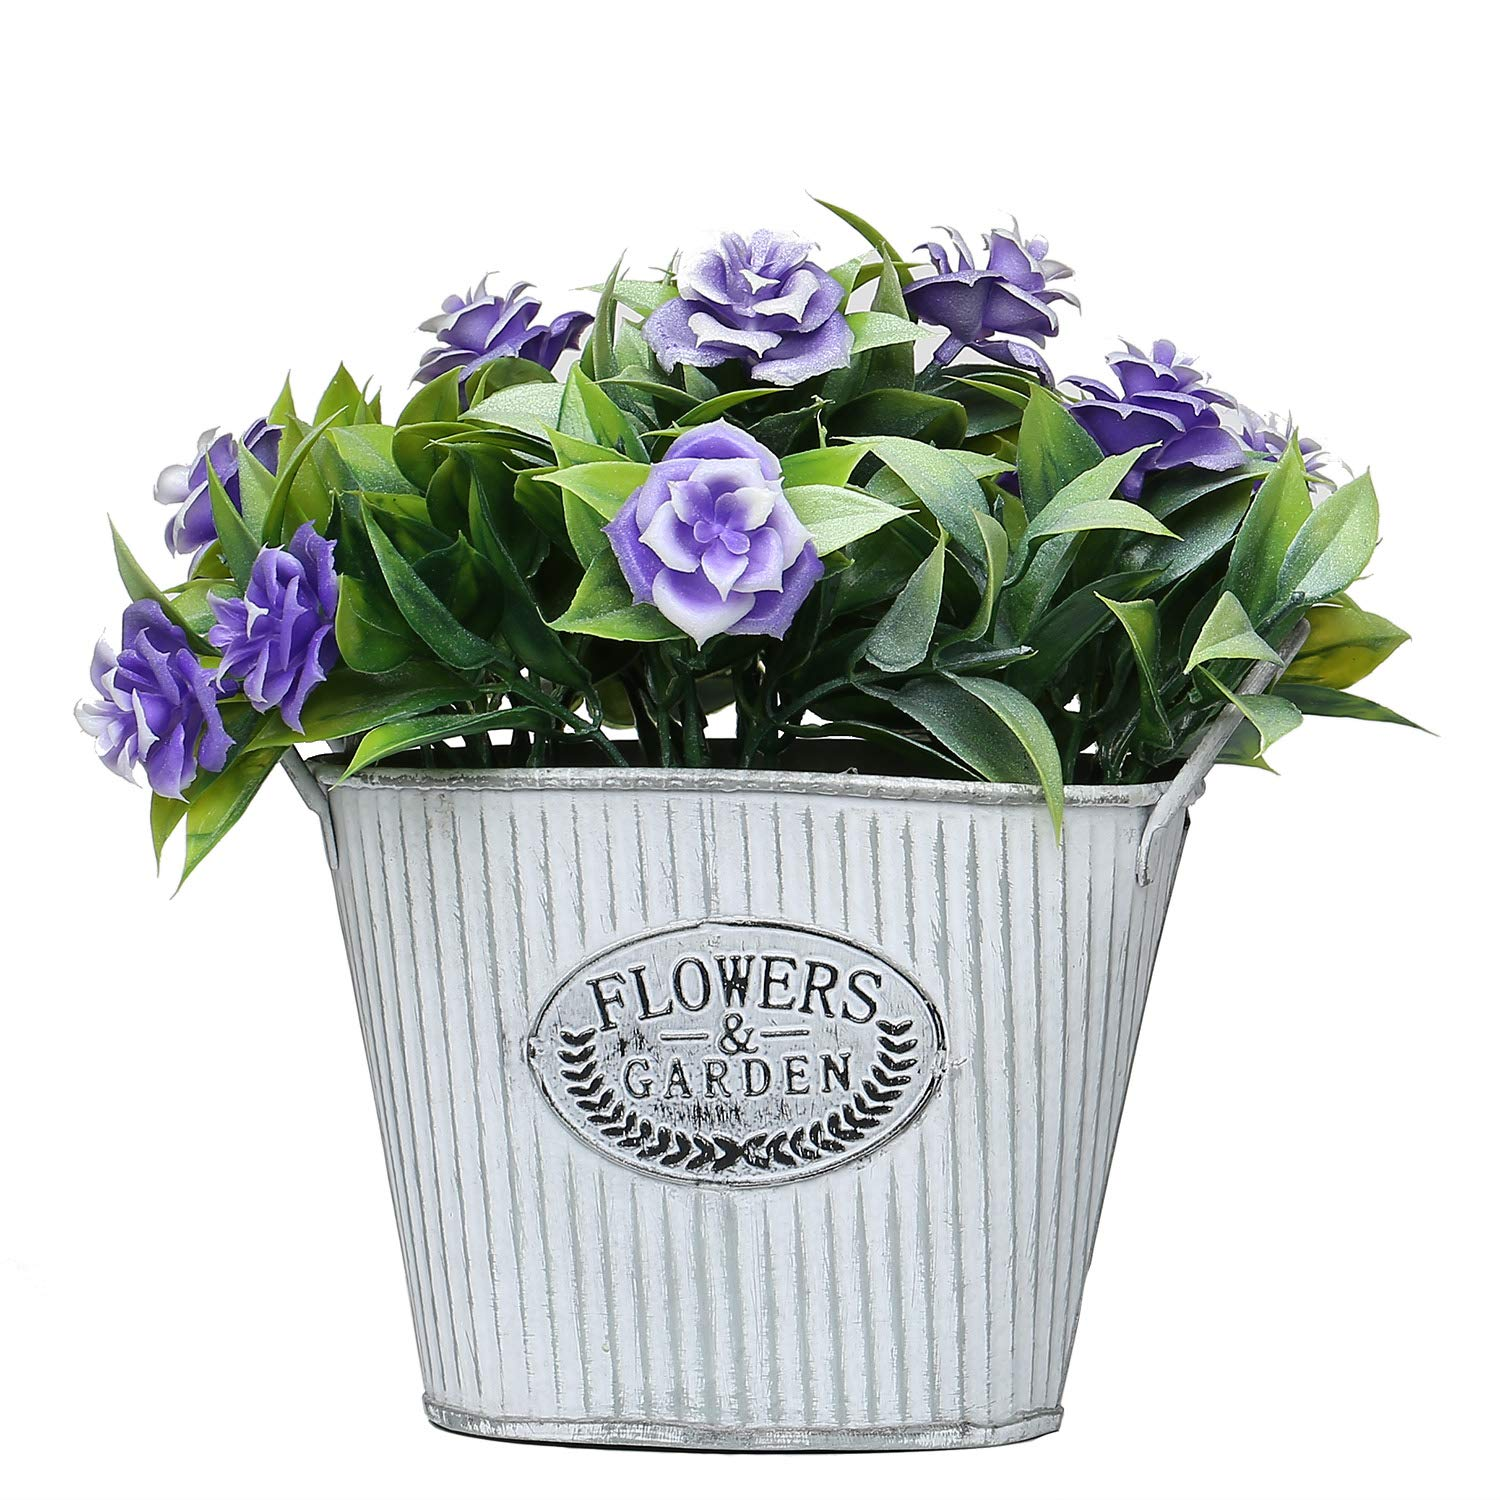 MIXROSE Artificial Flowers with Vase Mini Wild Rose Faux Plant Purple in Steel Pot for Home Wedding Decor